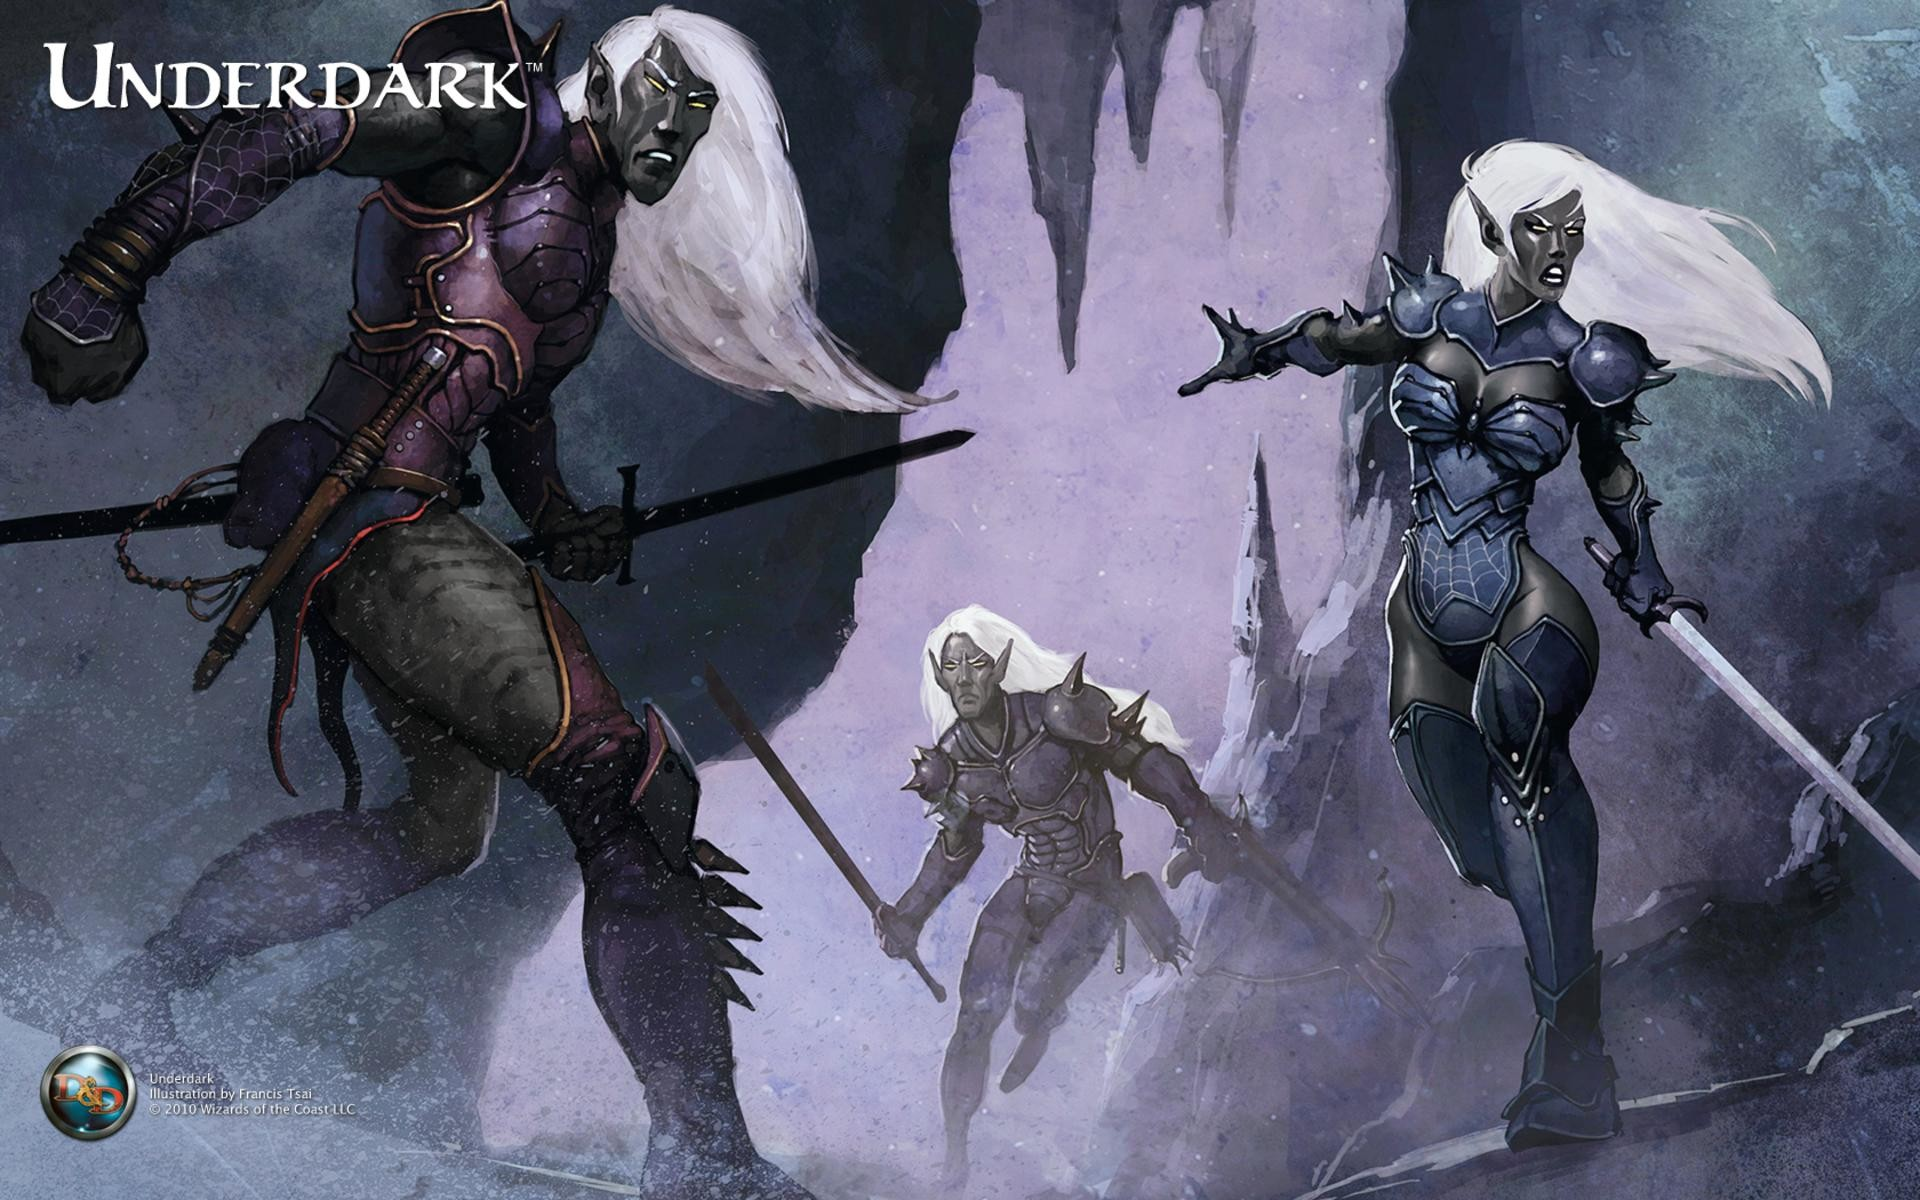 1920x1200 http://pic1.win4000.com/wallpaper/0/510a035a5c6f6.jpg | Dungeons & Dragons  | Pinterest | Dark elf, Fantasy characters and RPG